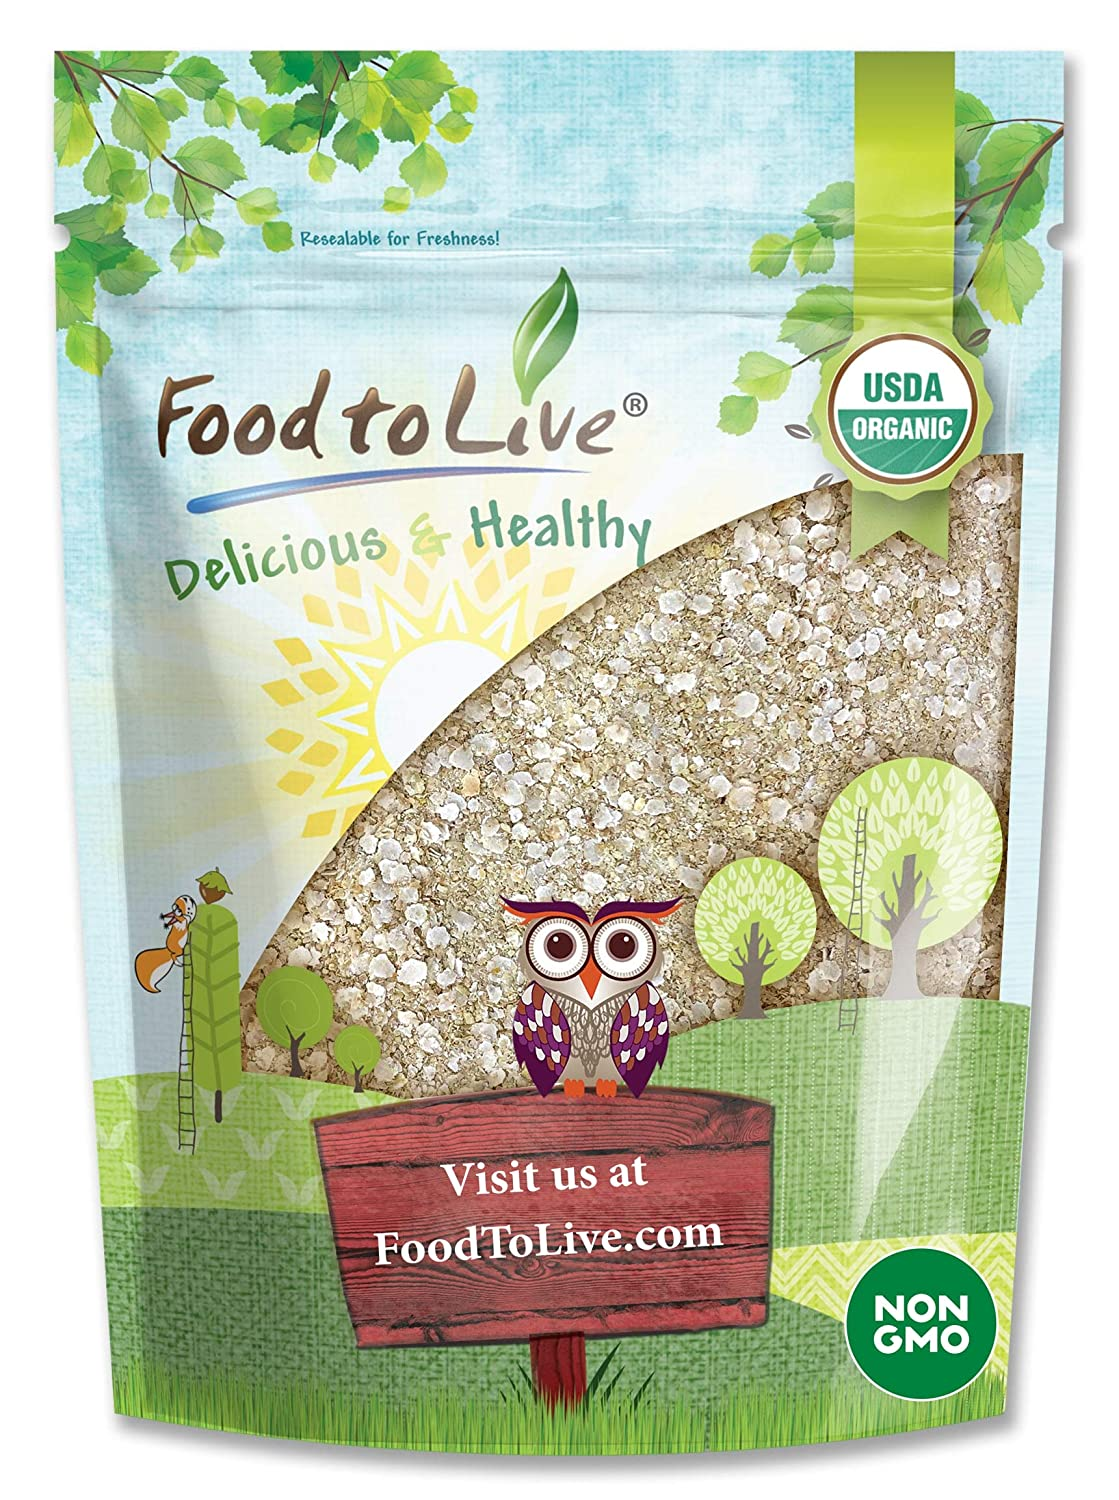 Organic White Quinoa Flakes, 4 Pounds - Non-GMO Pressed Quinoa Seeds, Vegan, Kosher, Bulk, High in Protein, Riboflavin, and Phosphorus. Great for Cooking, Baking, Oatmeal, Breakfast Cereals